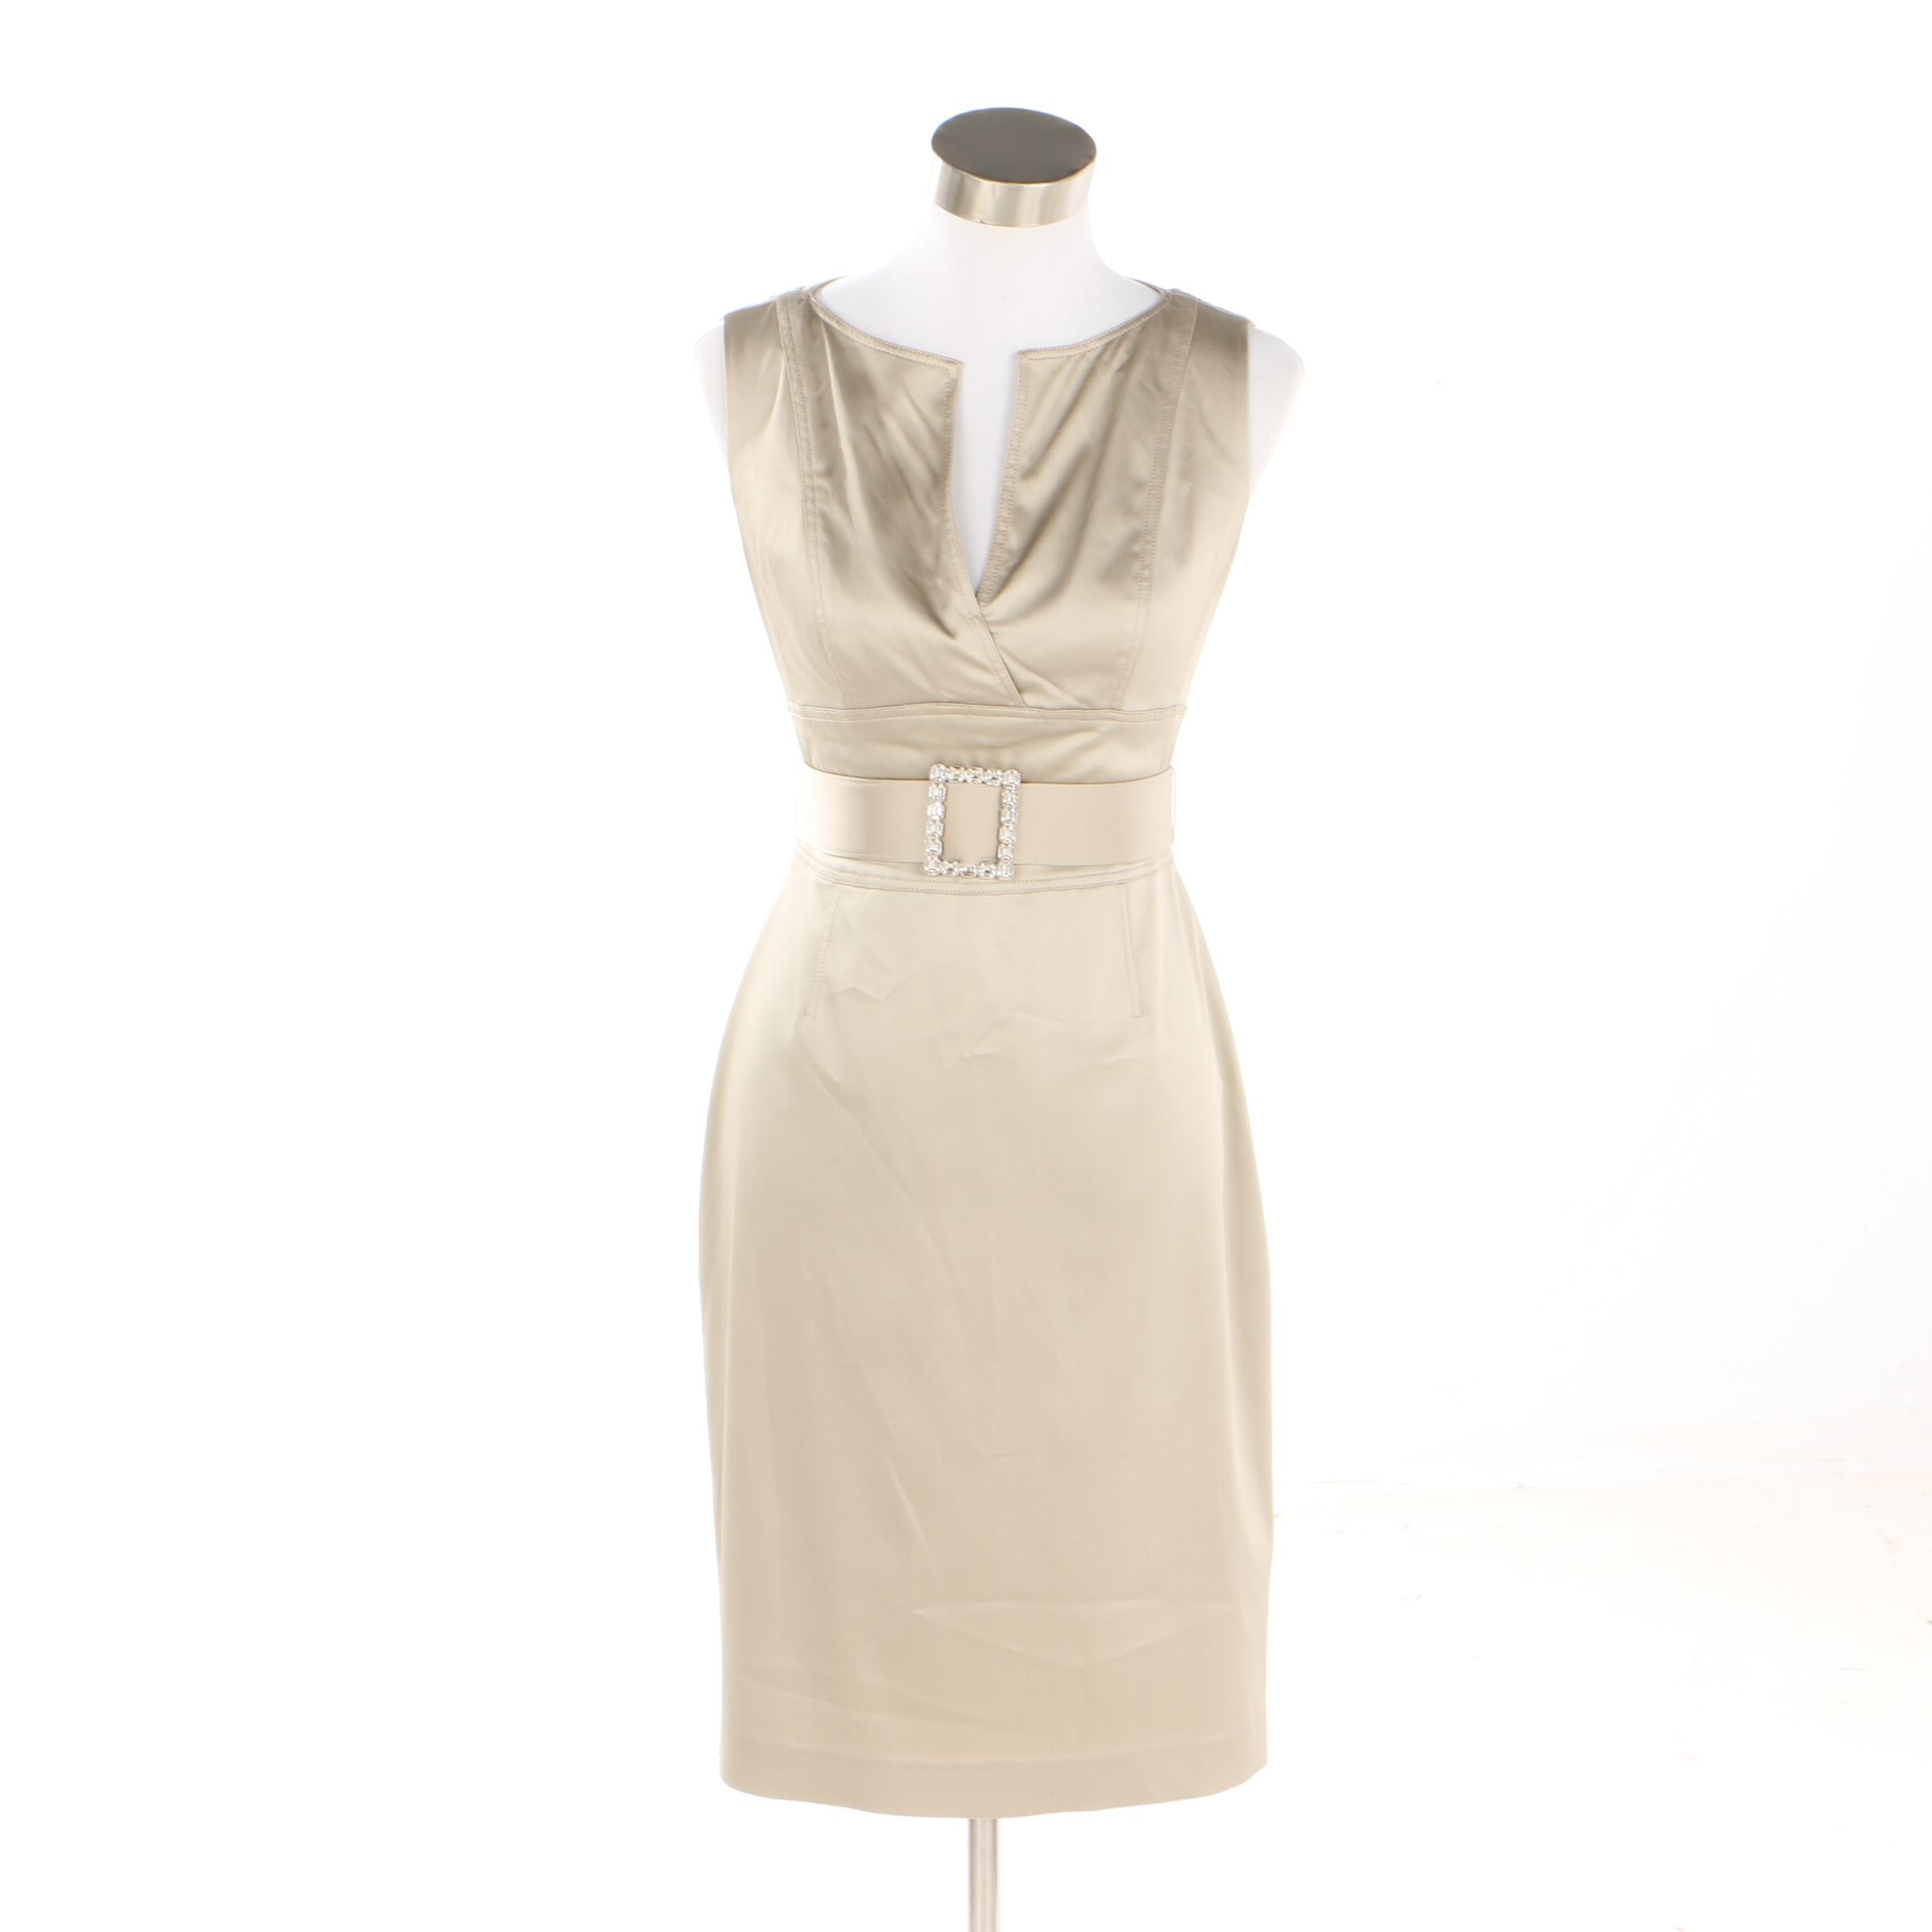 Kay Unger Beige Sleeveless Cocktail Dress